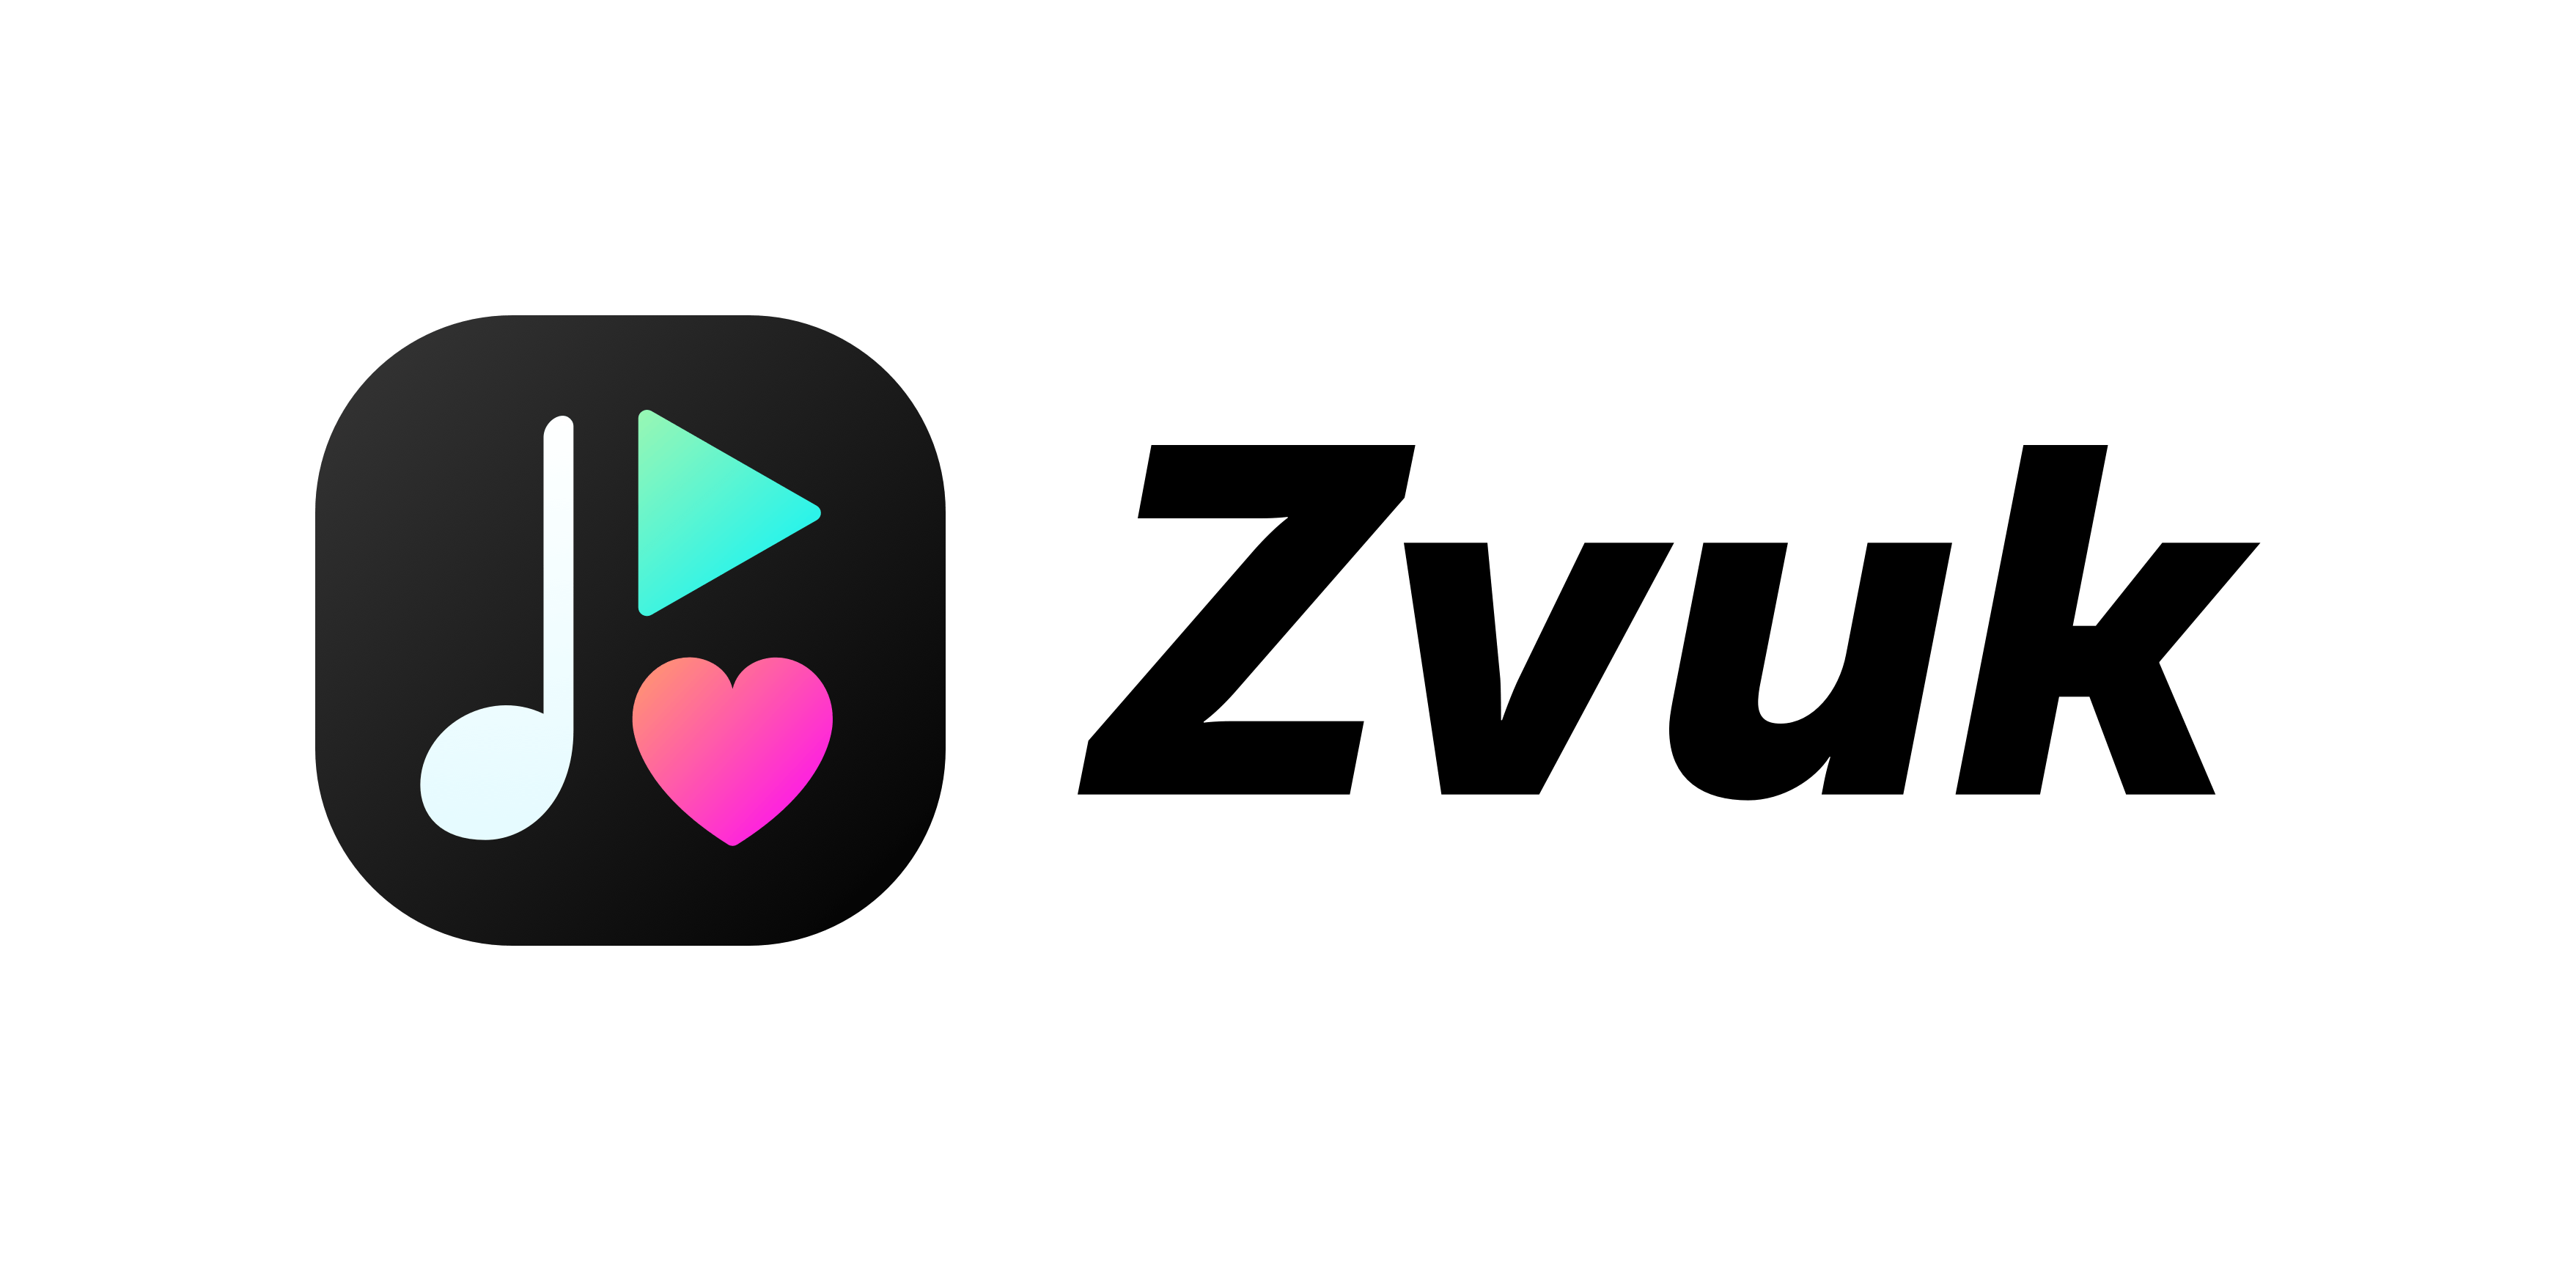 how to transfer music from zvuk to spotify